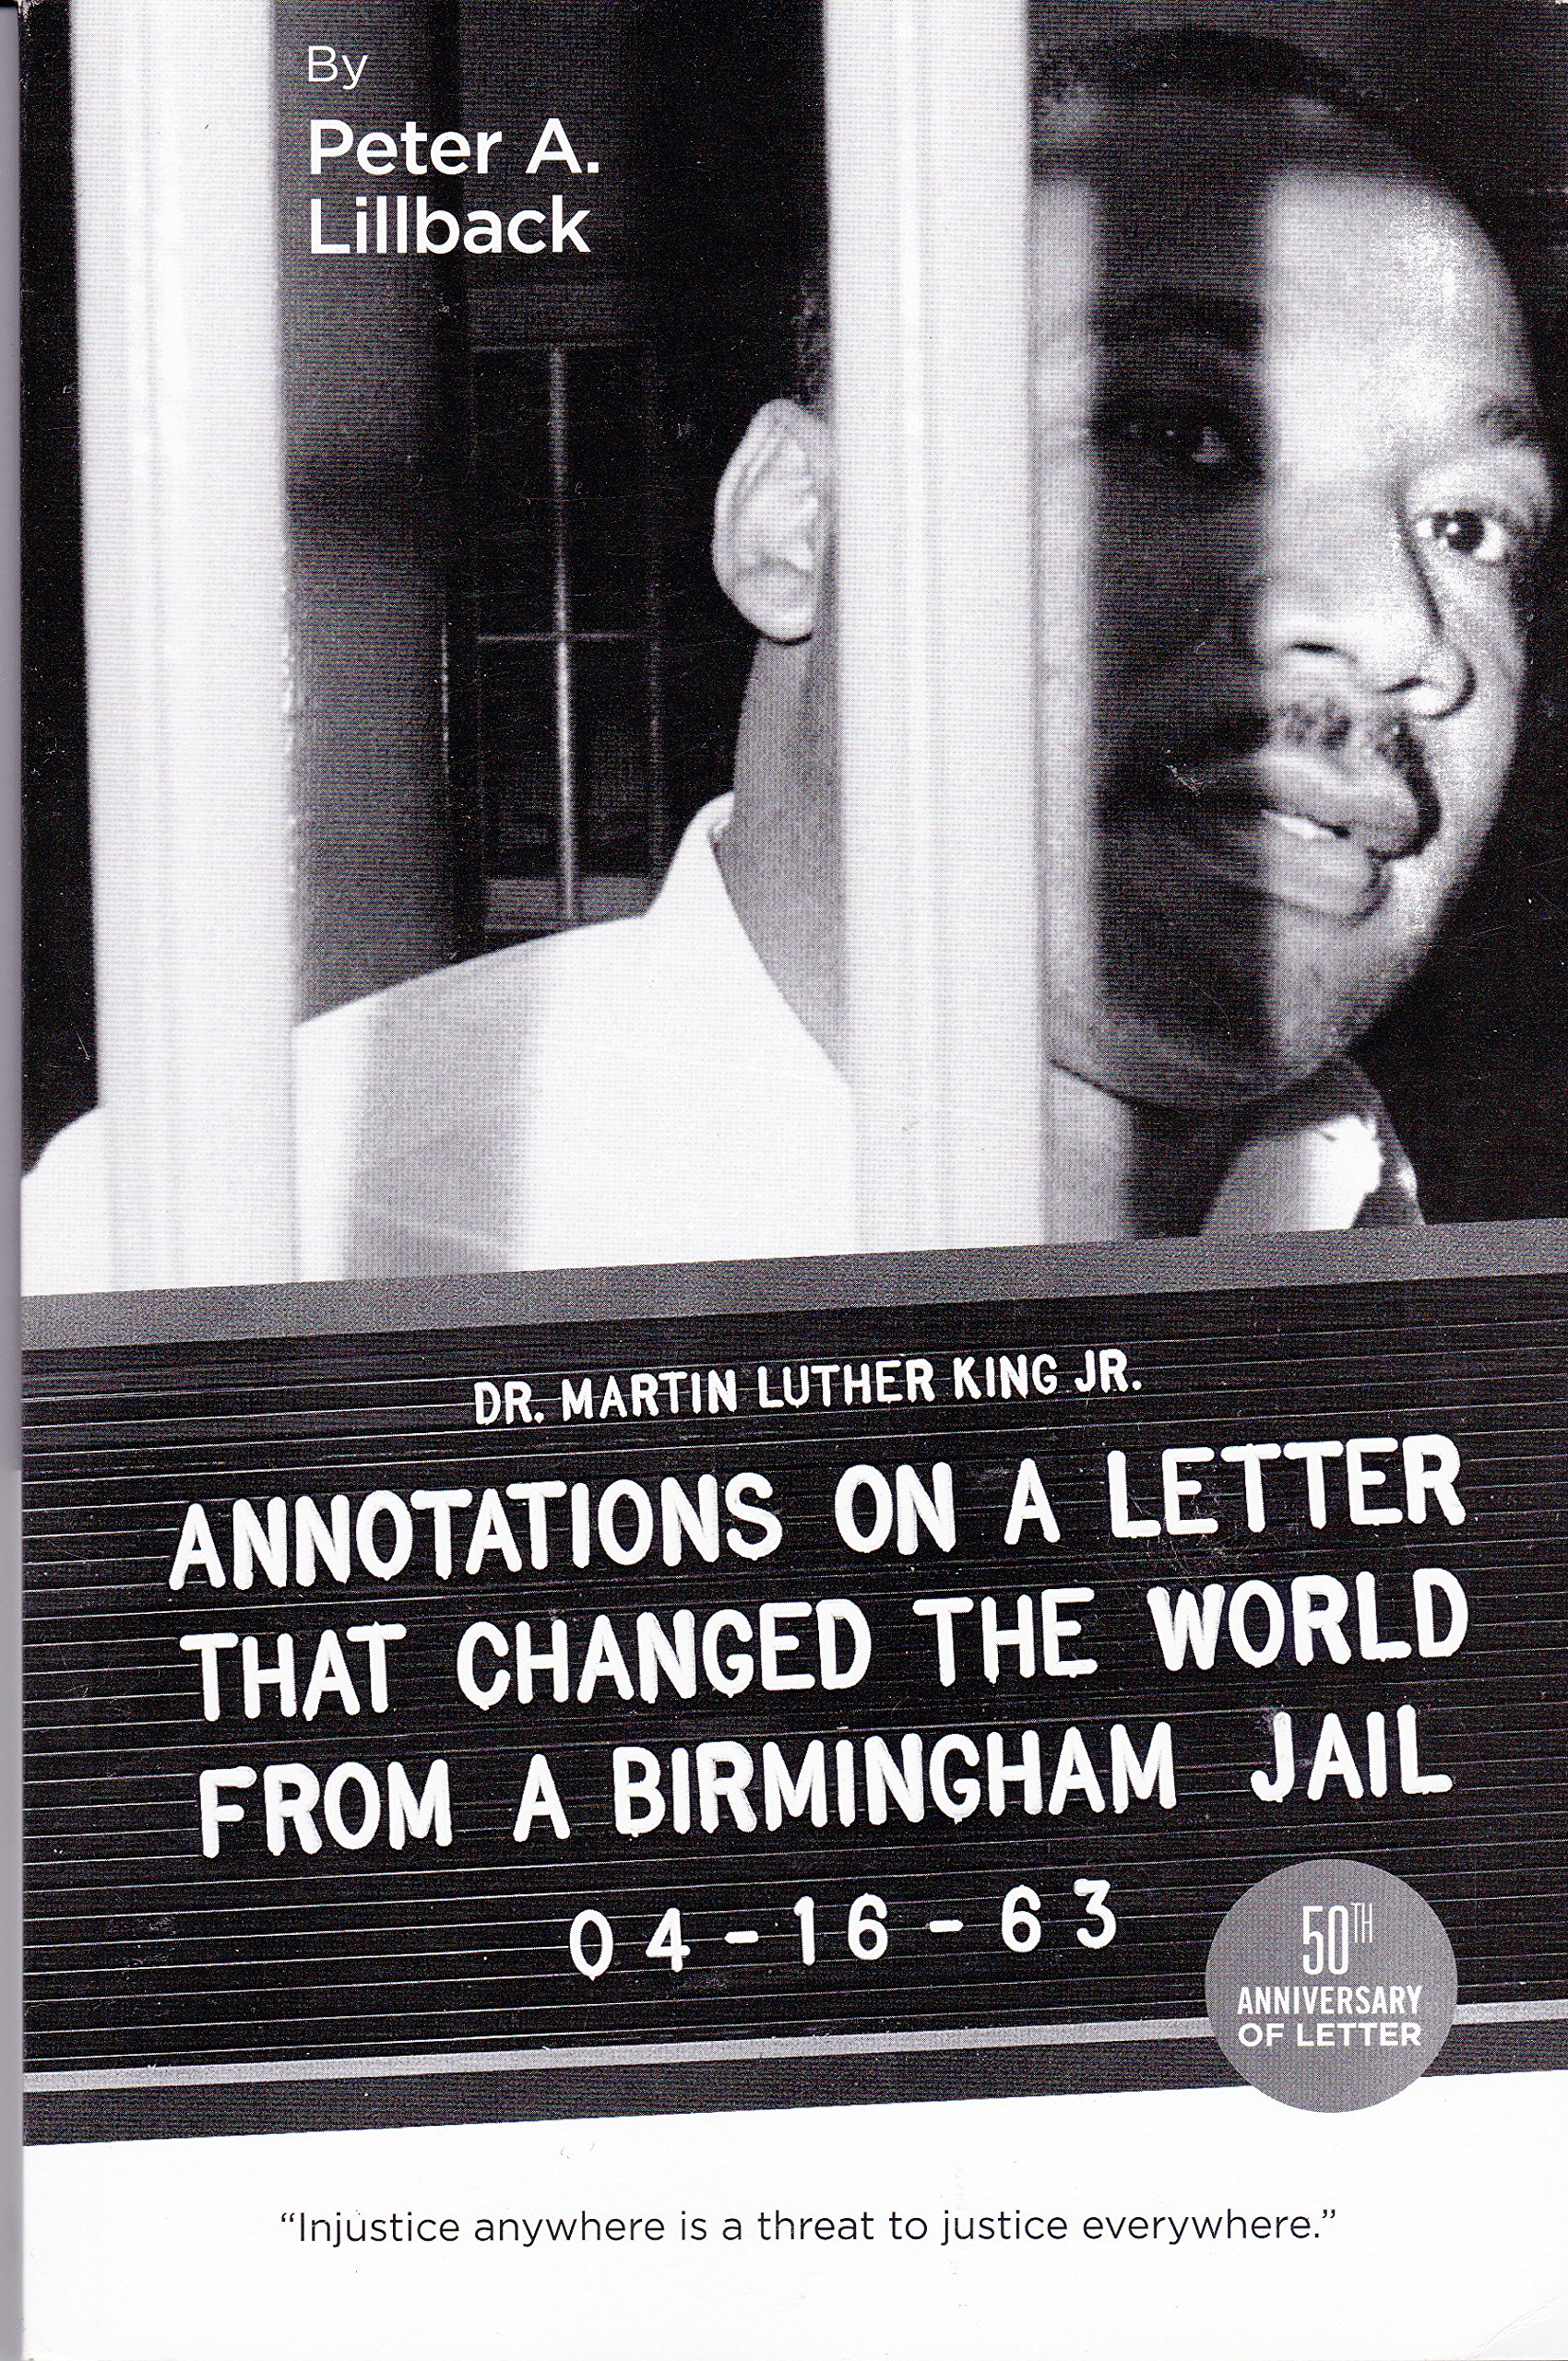 Download Annotations on a letter that changed the world from Birmingham jail 04-16-63 PDF